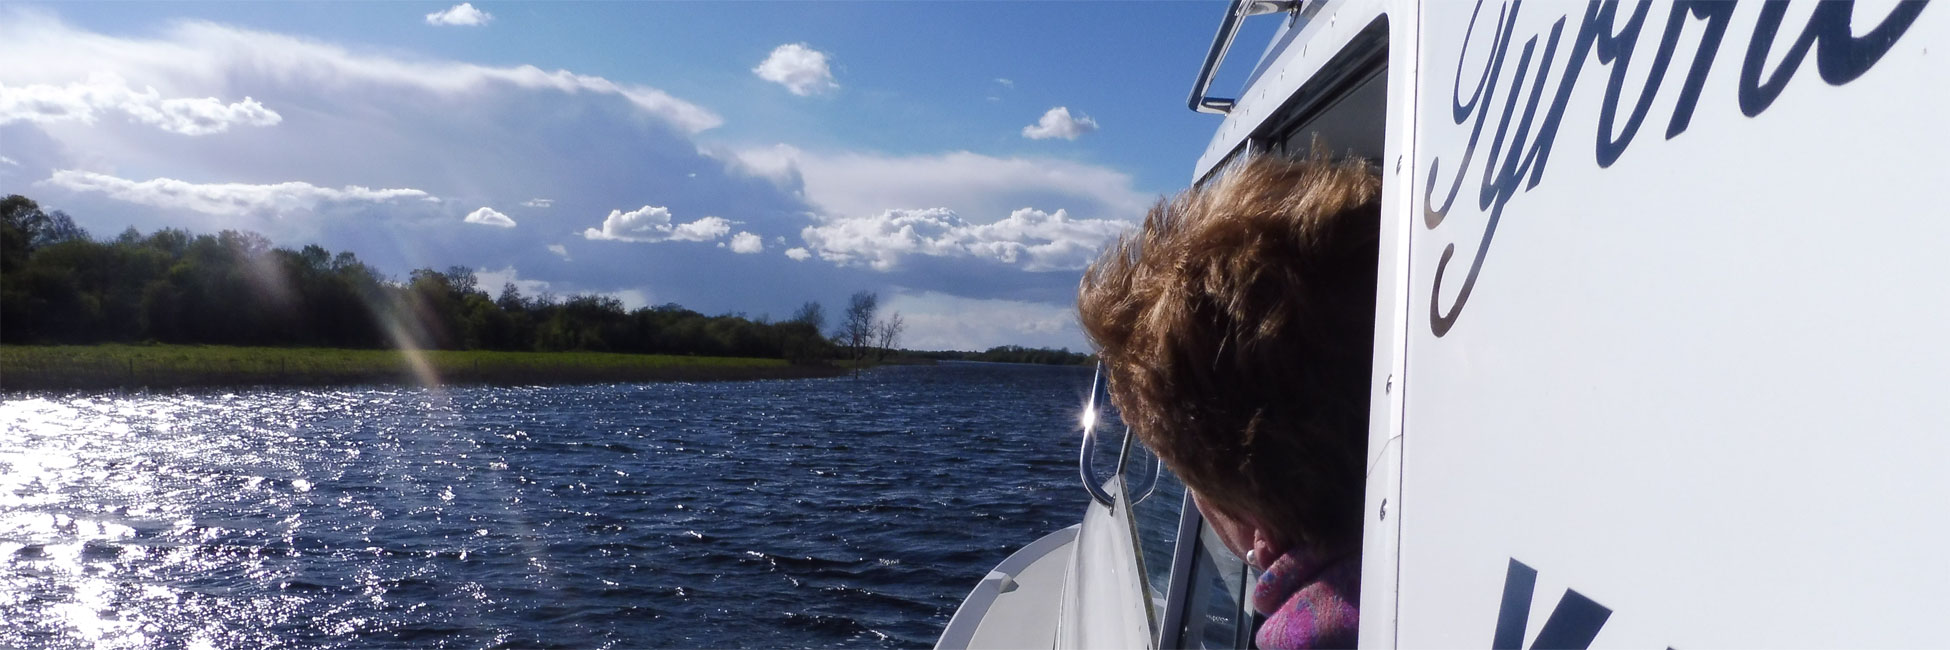 Shannon River Boat Hire Ireland - Hire your Boat and Get away from it all